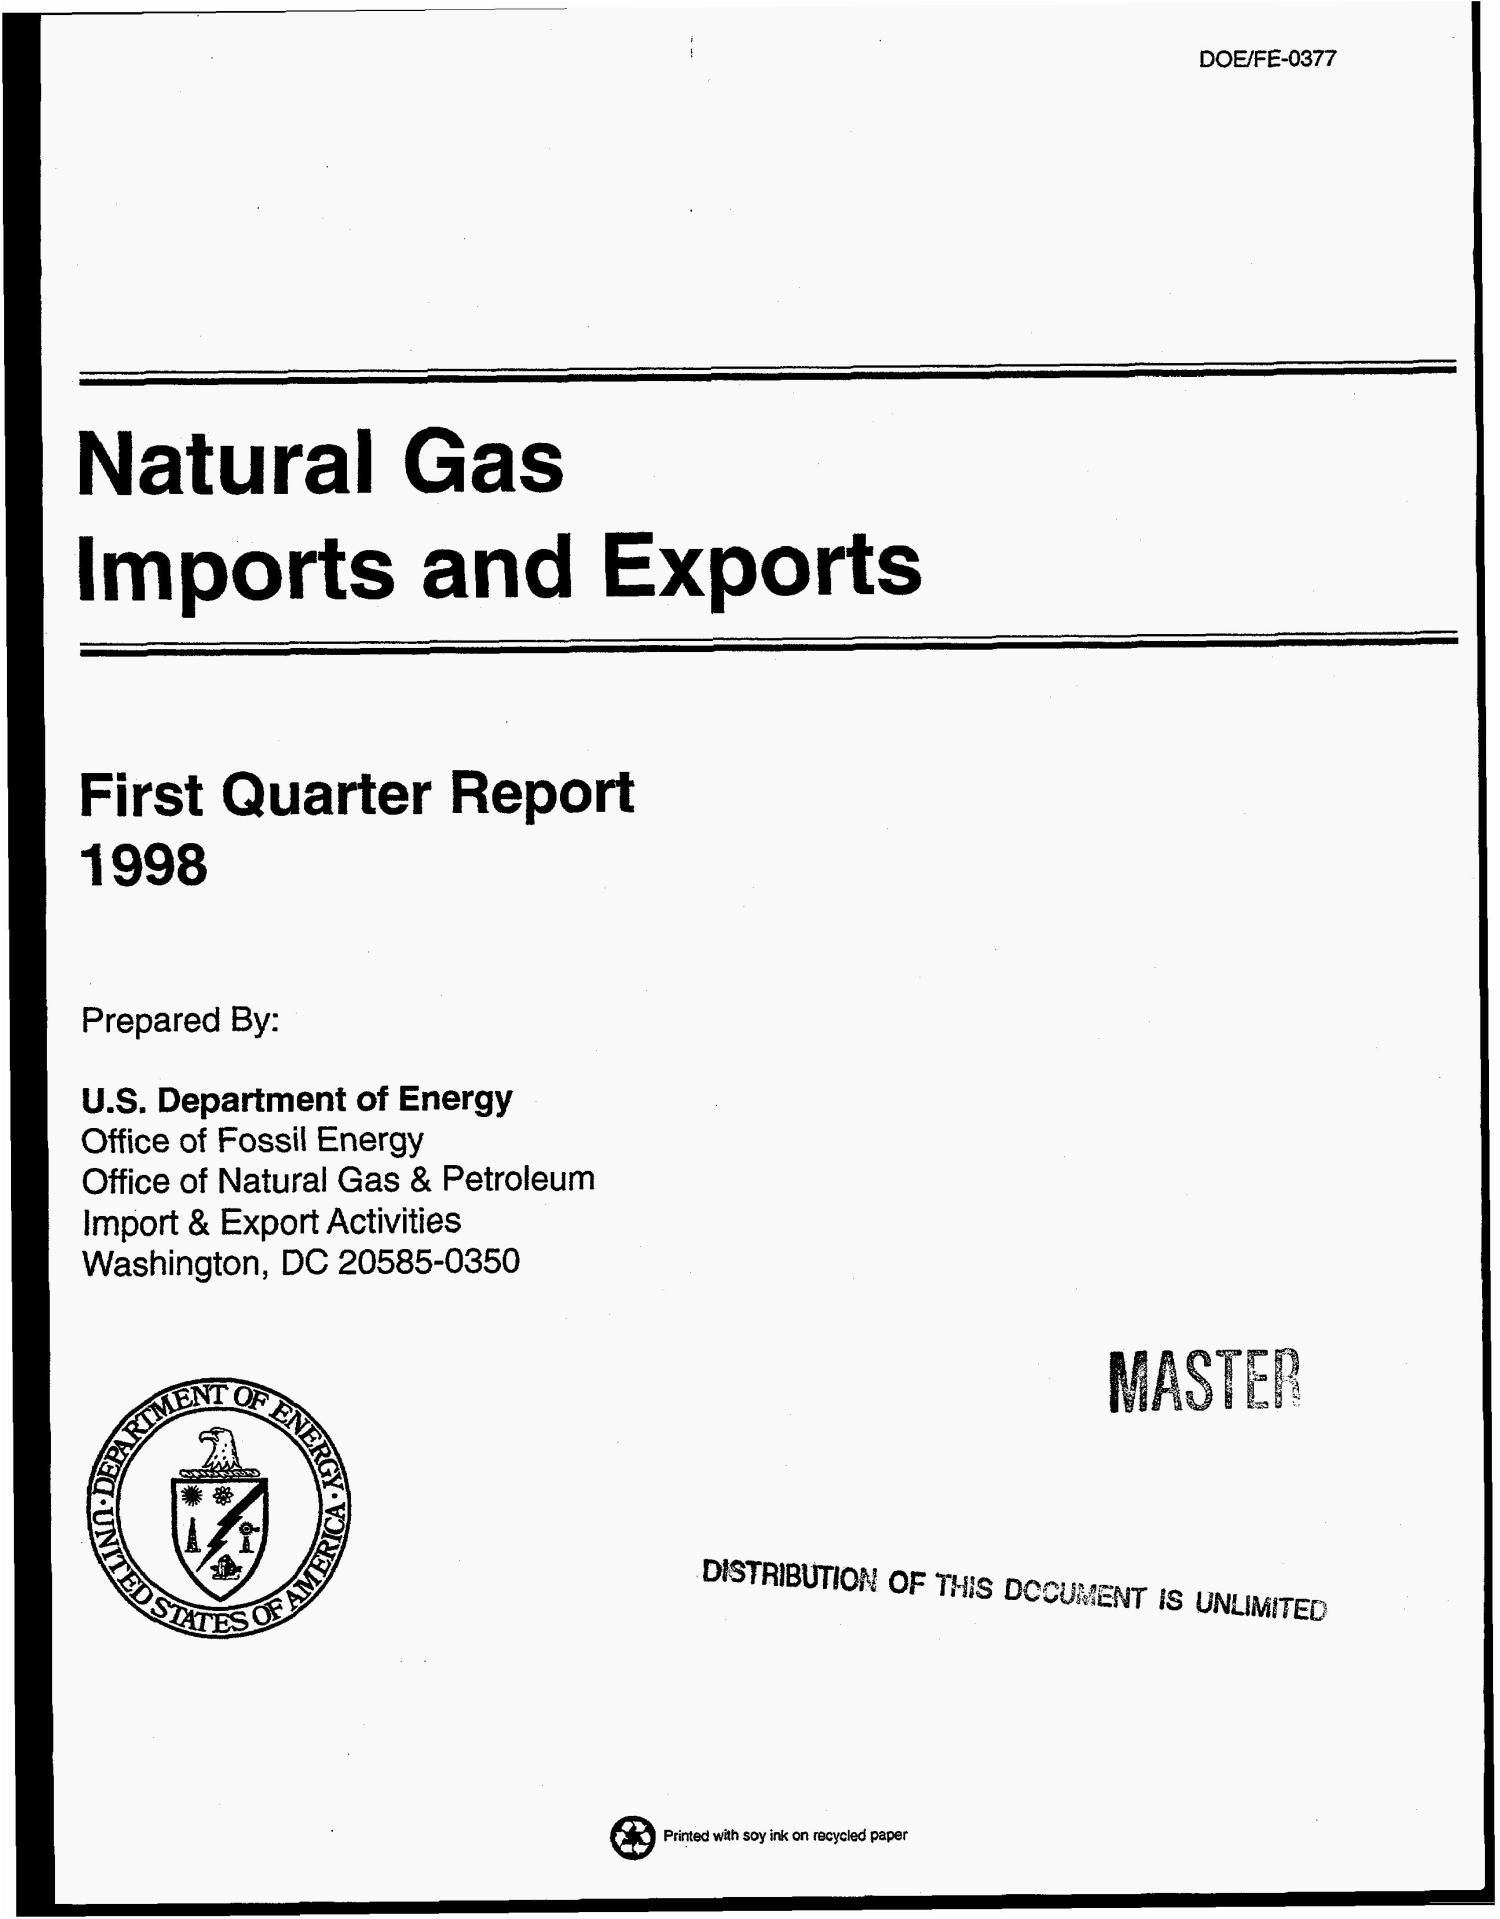 Natural gas imports and exports. First quarter report, 1998                                                                                                      [Sequence #]: 1 of 189